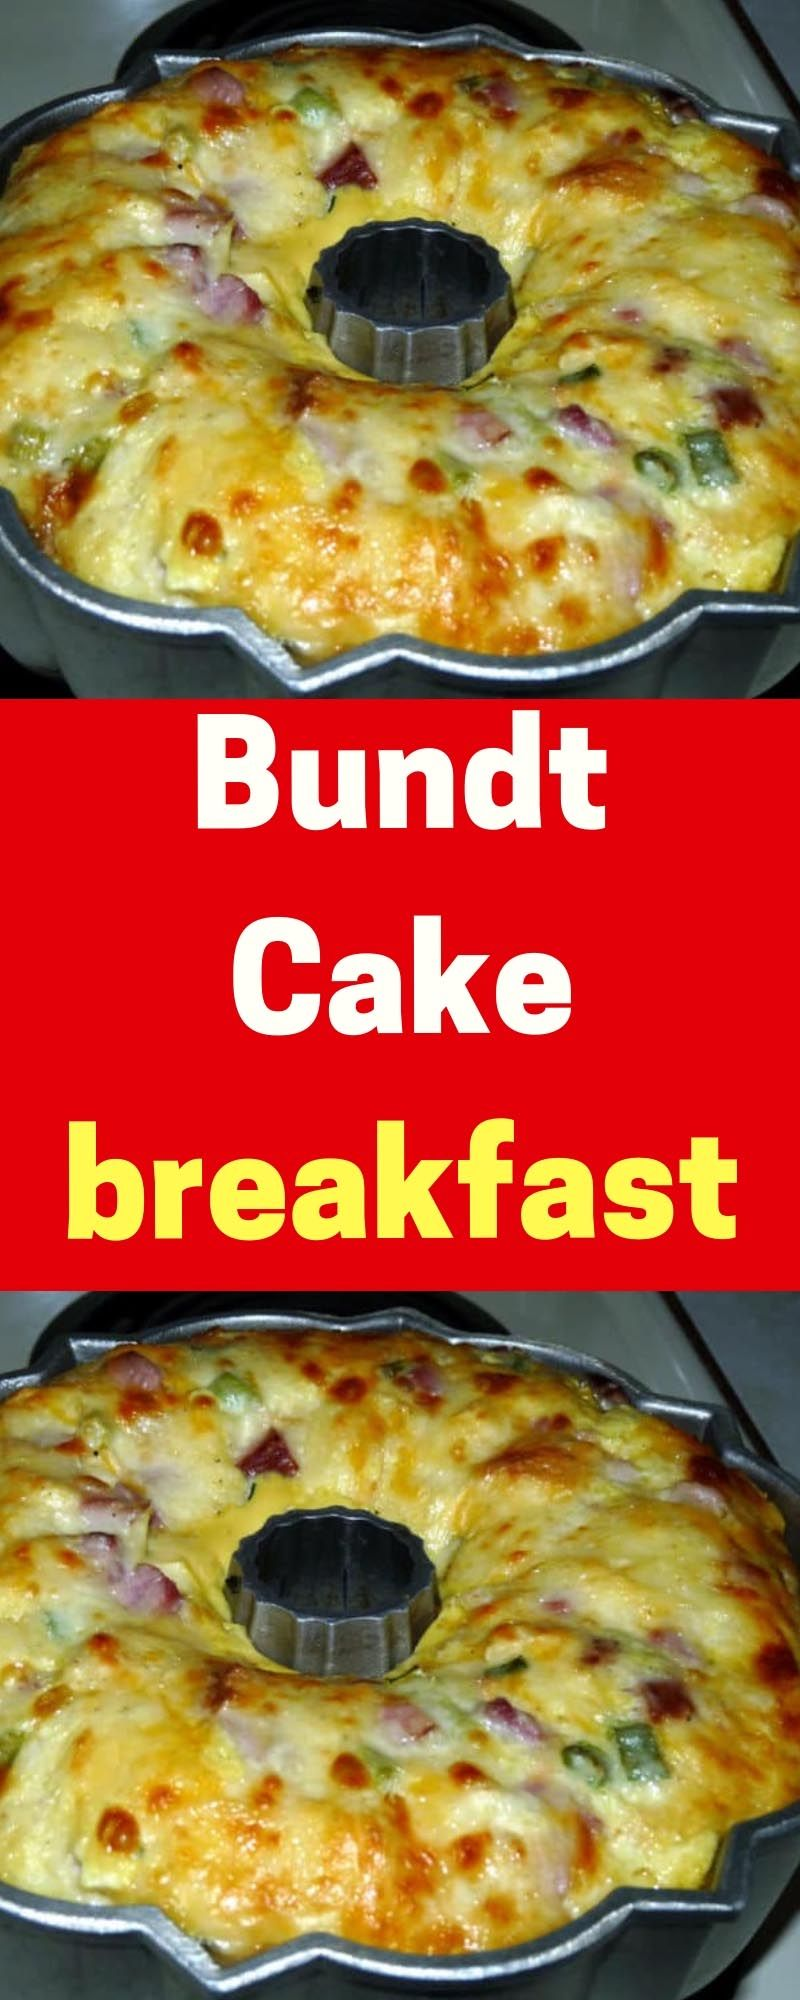 Bundt Cake Breakfast To Make This Recipe You U2019il Need The